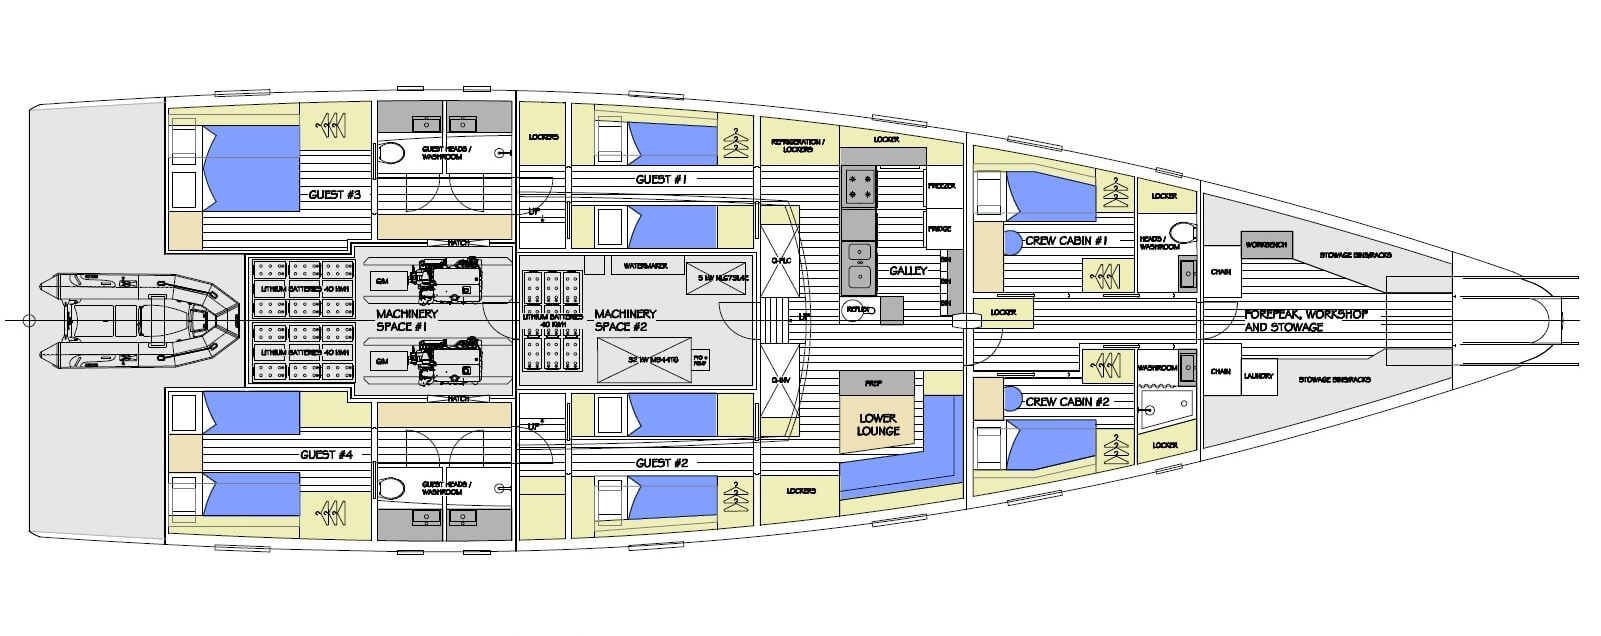 This is the general arrangement drawing showing the interior design for an ice strengthened 25m high latitude motor sailer which began life as a project for a scientific organisation to study climate change and conservation in the polar regions. A considerable amount of preliminary design has already been undertaken including into hybrid drive propulsion and other systems. This project has been fully costed by several yards and the design would transform easily into either a commercial expedition charter vessel or a private explorer yacht.